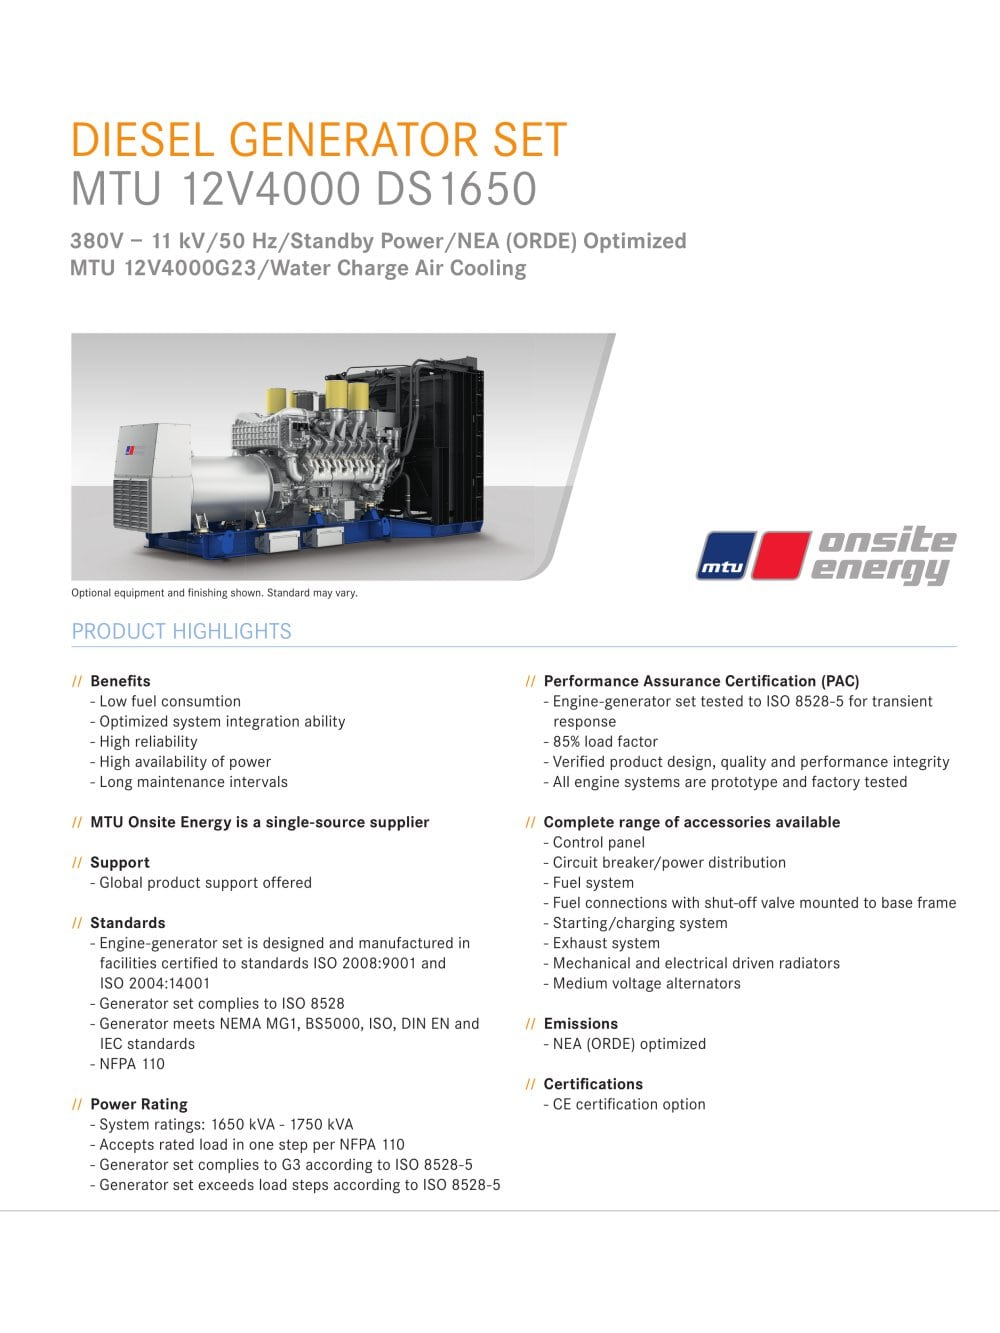 Diesel Generator Set Mtu 12v4000 Ds1650 Onsite Energy Pdf Control Panel Wiring Standards 1 6 Pages